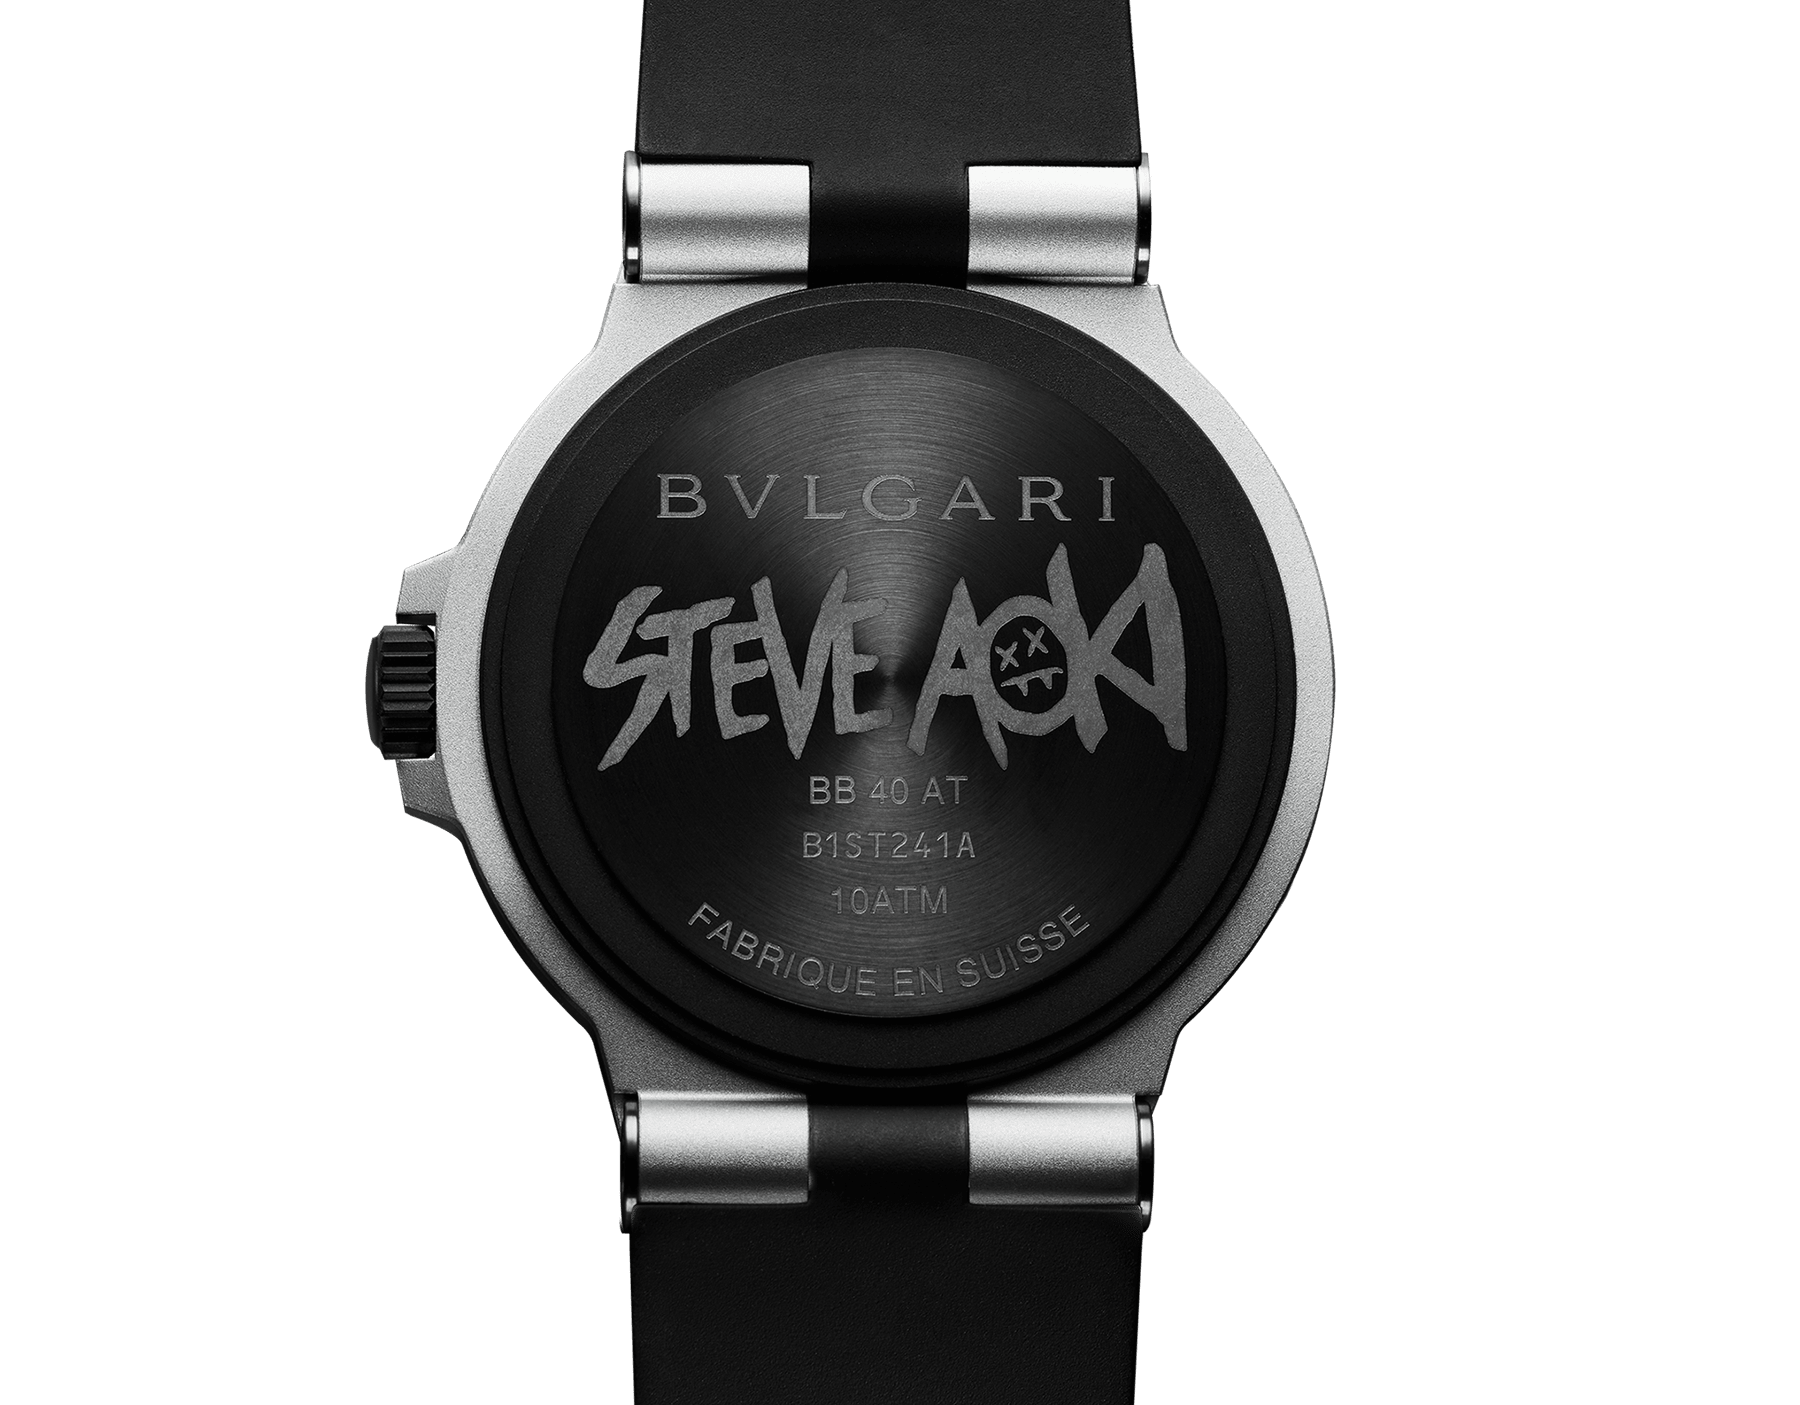 Bvlgari Aluminium Steve Aoki Limited Edition watch with mechanical movement with automatic winding, 40 mm aluminum and titanium case, black rubber bezel with BVLGARI BVLGARI engraving, white SNL dial with special Steve Aoki logo and black rubber bracelet. Water-resistant up to 100 meters. 103539 image 5